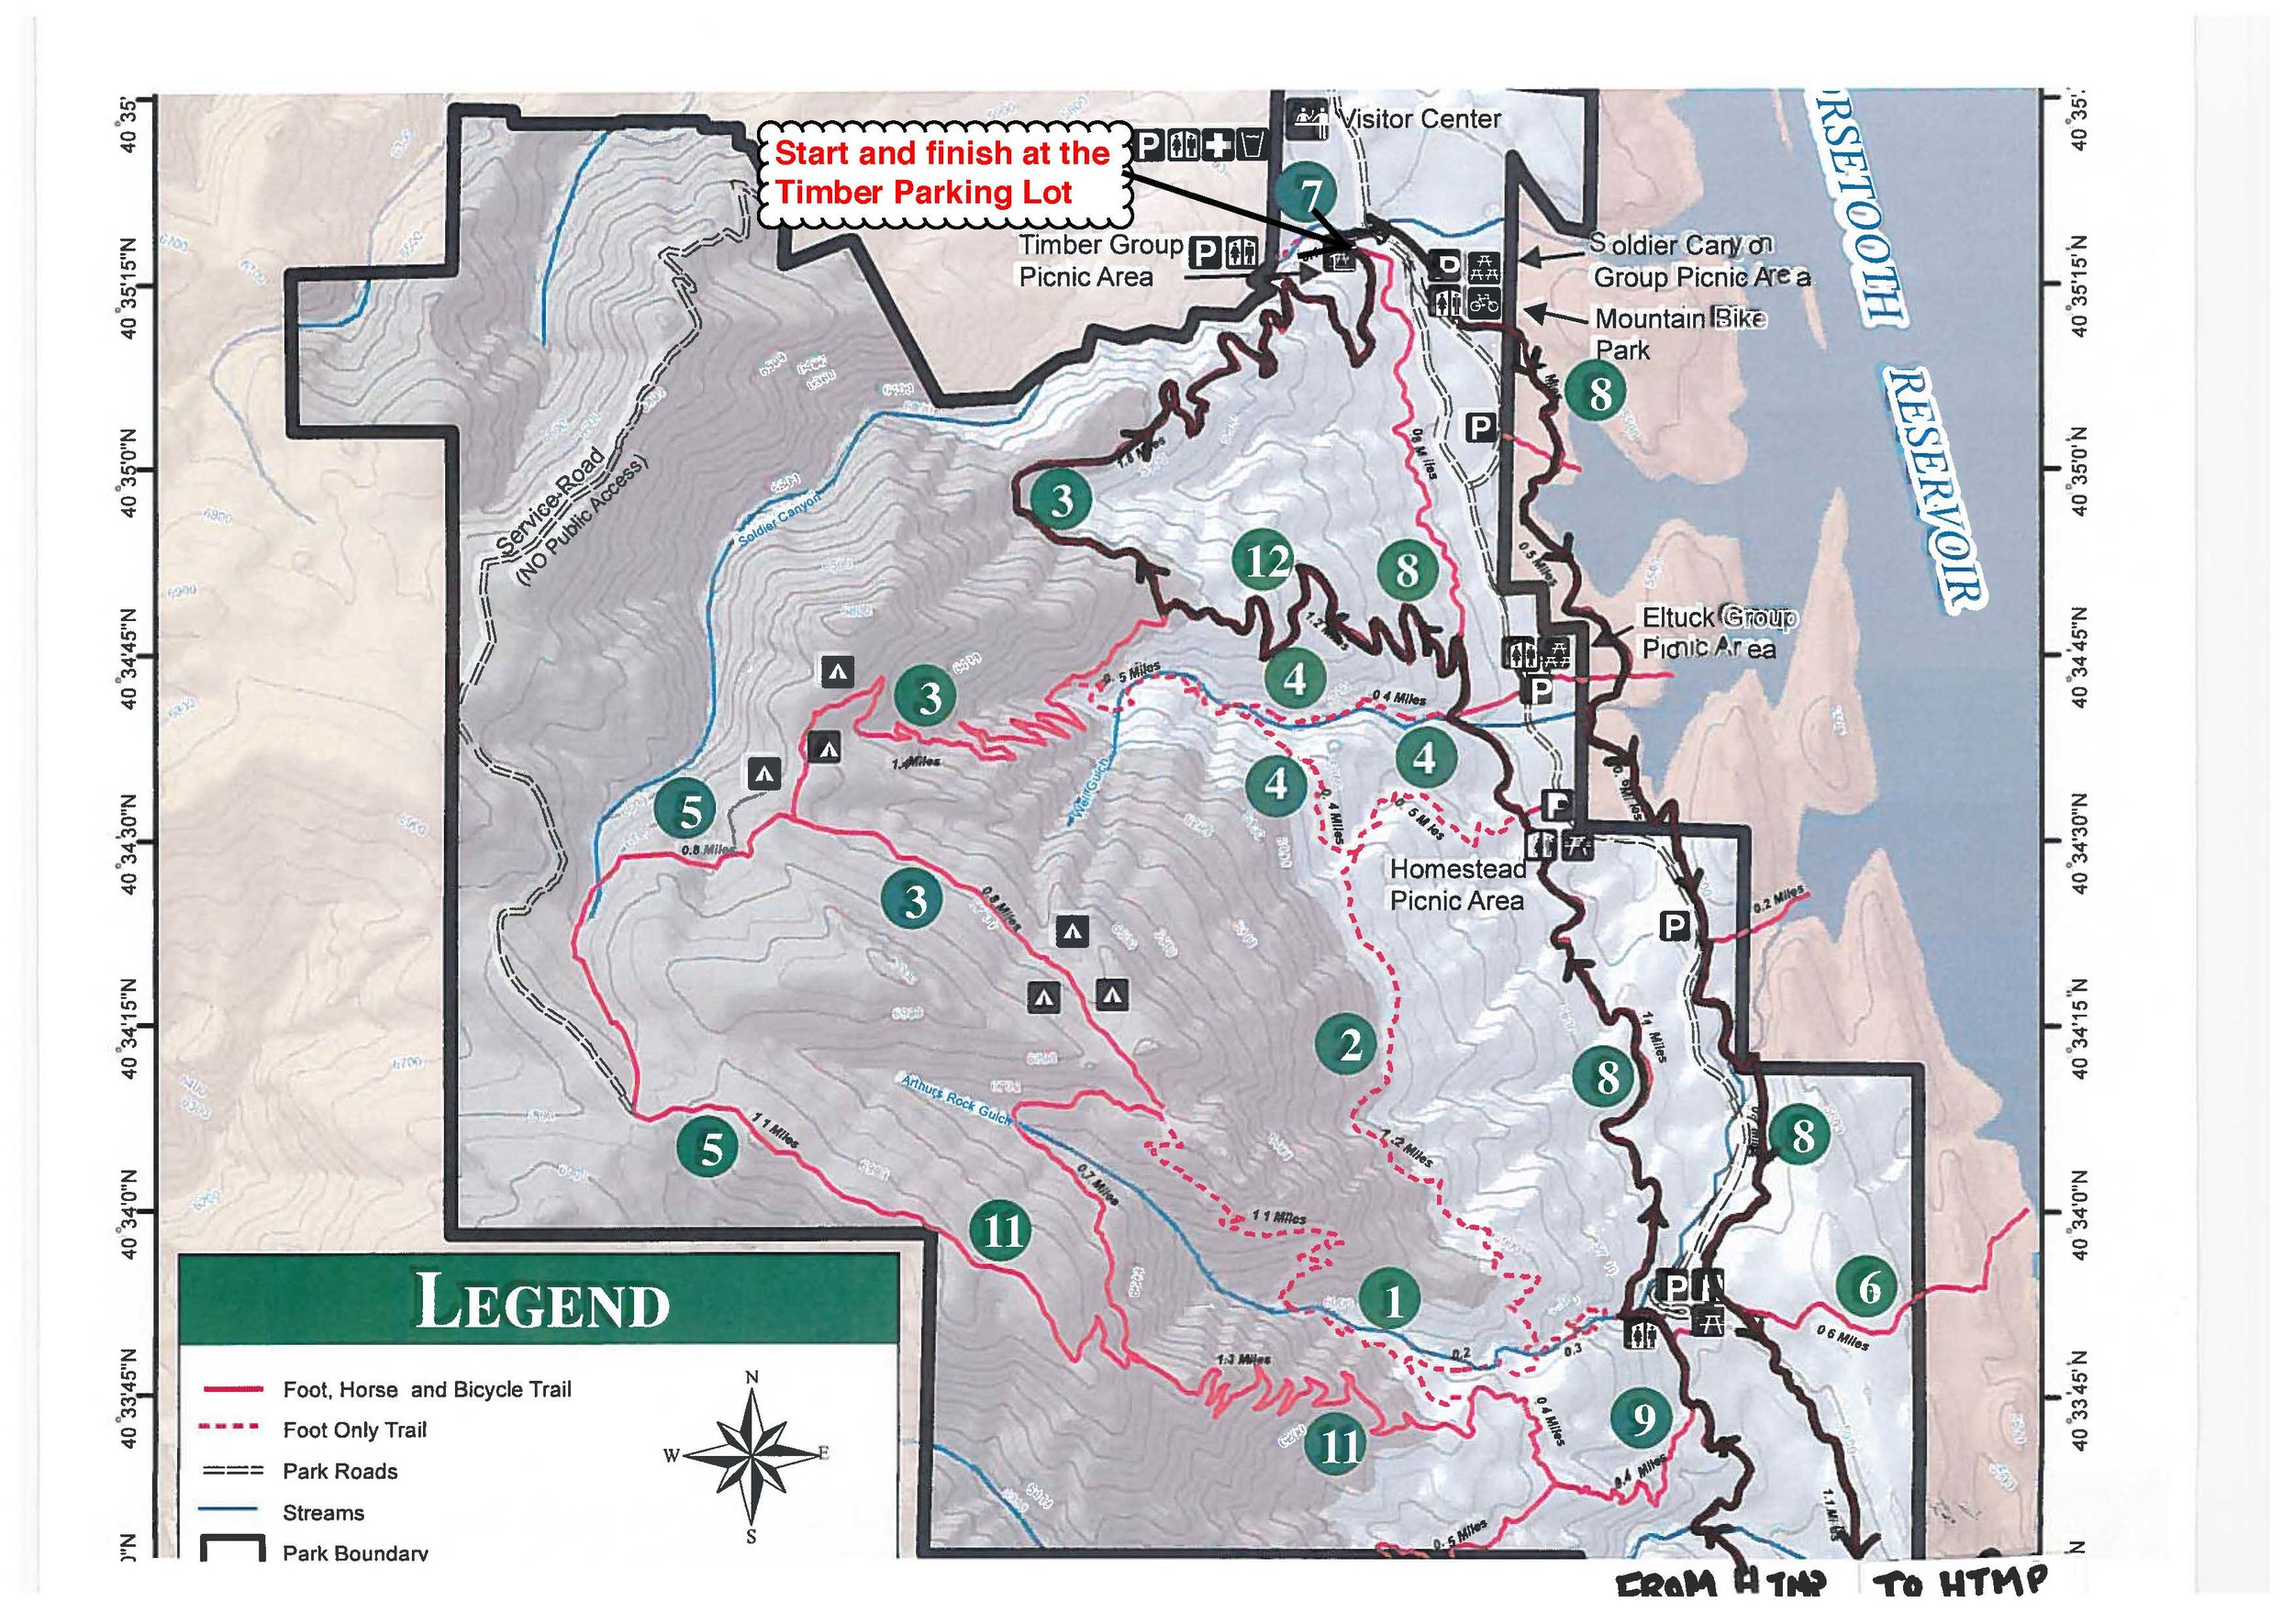 Copy of Map 1 - Lory State Park (north bit)